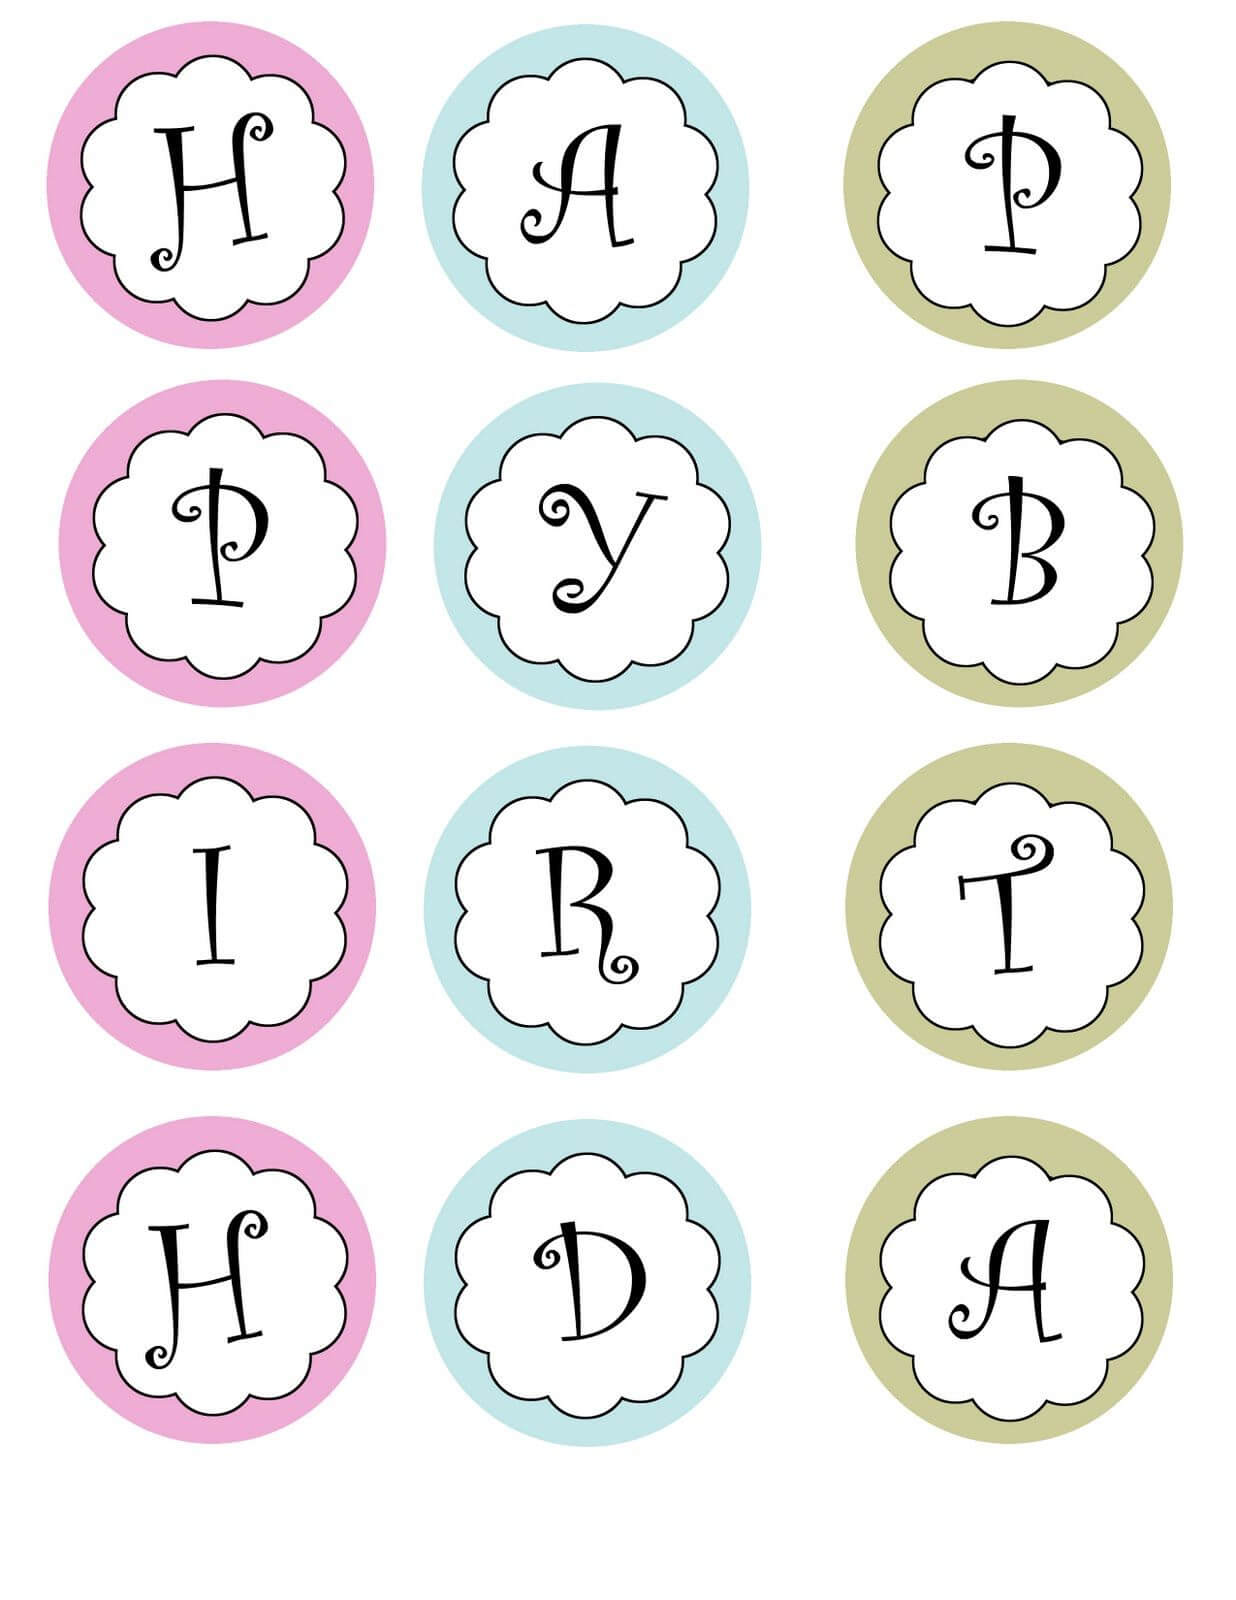 Printable Banners Templates Free | Print Your Own Birthday with regard to Letter Templates For Banners